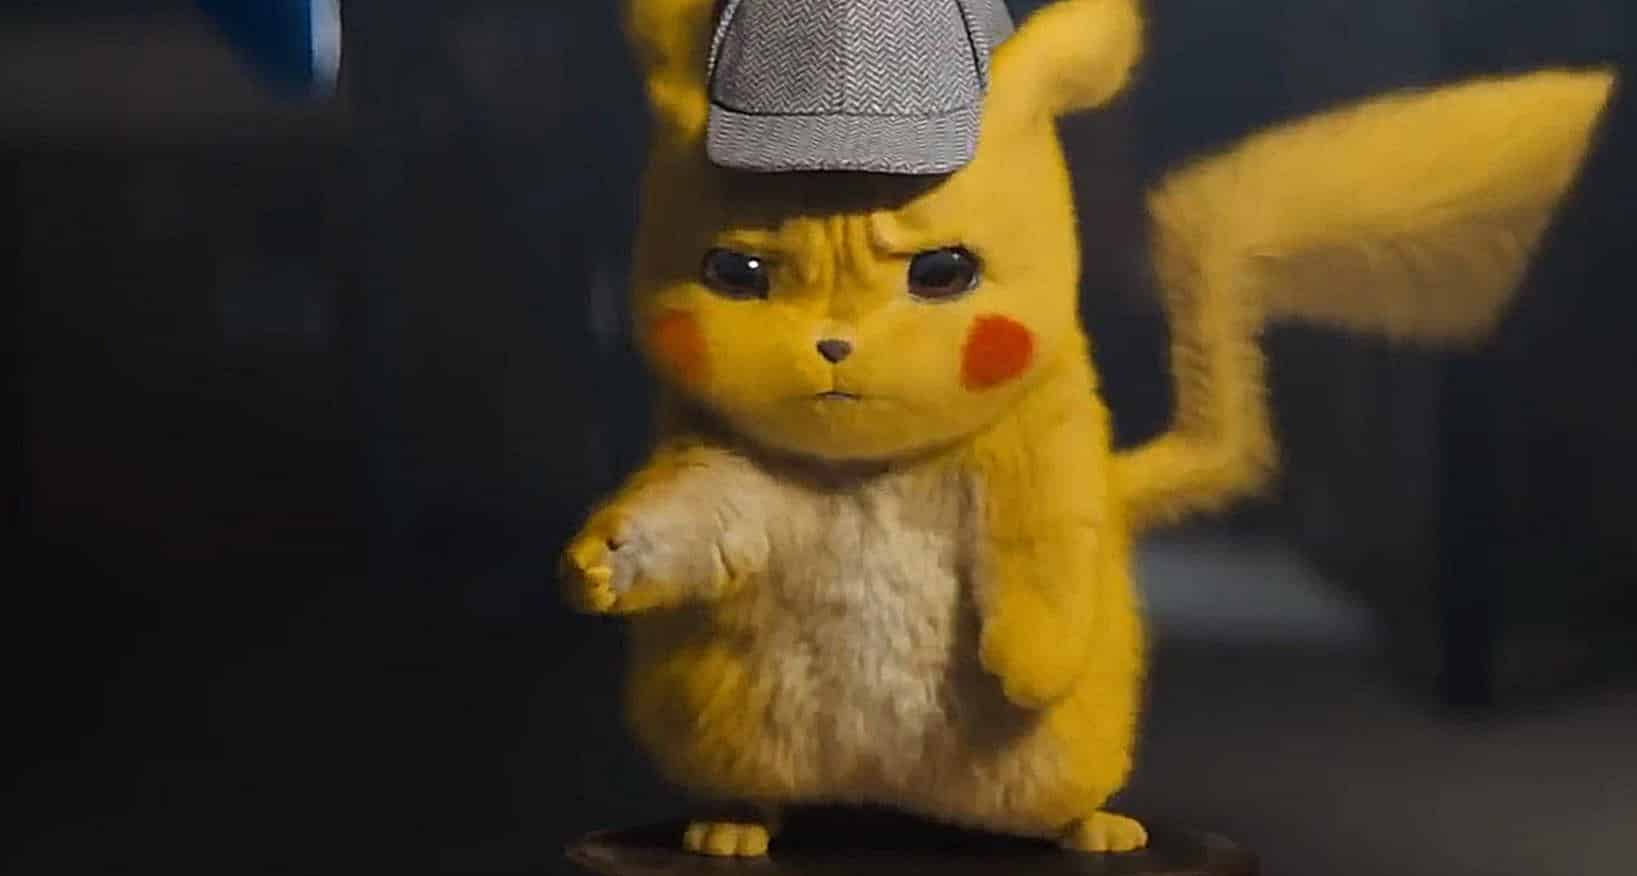 https://www.screengeek.net/wp-content/uploads/2018/11/detective-pikachu-movie-1.jpg